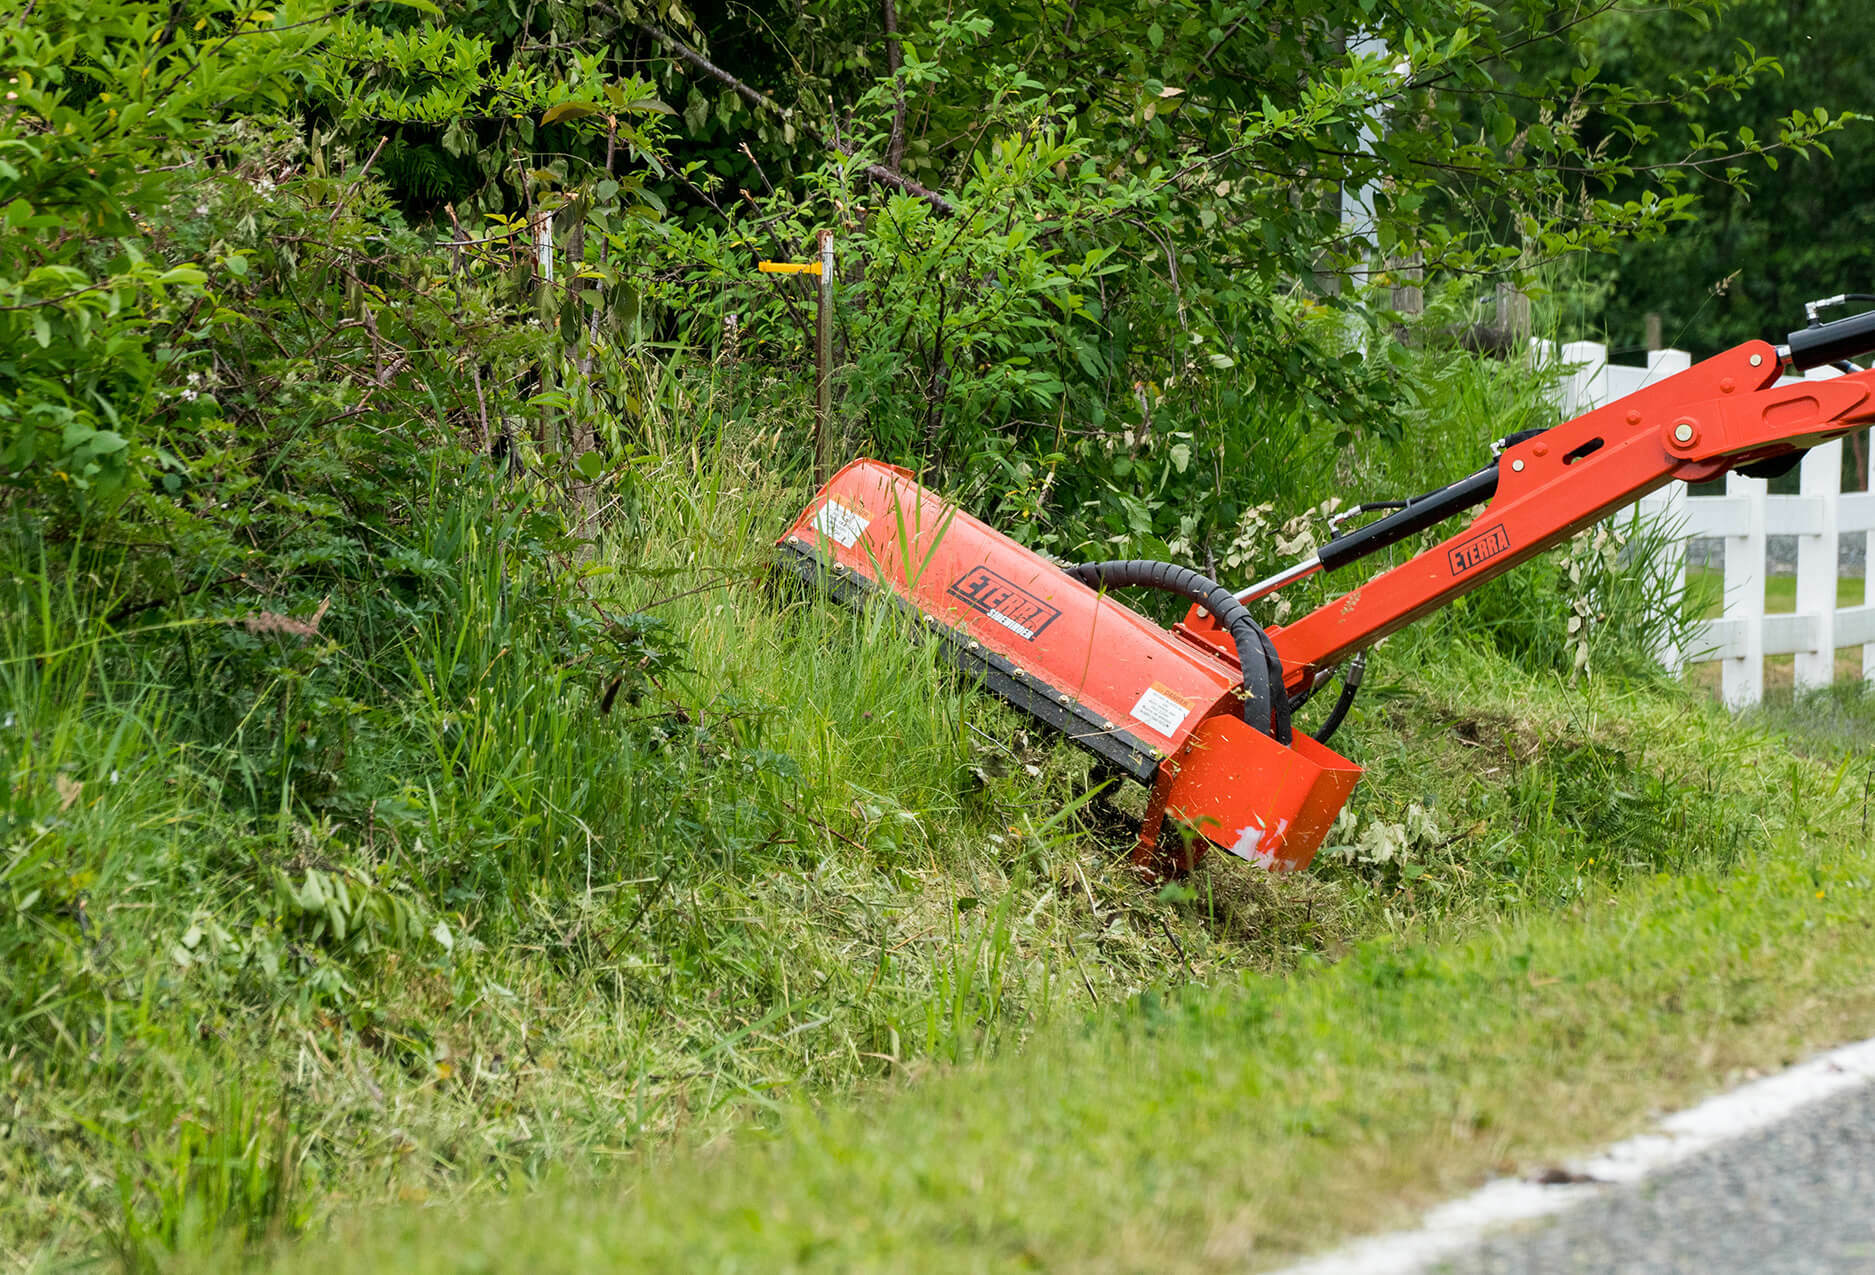 Eterra Sidewinder Skid Steer flail mower on Raptor boom arm mowing hillside